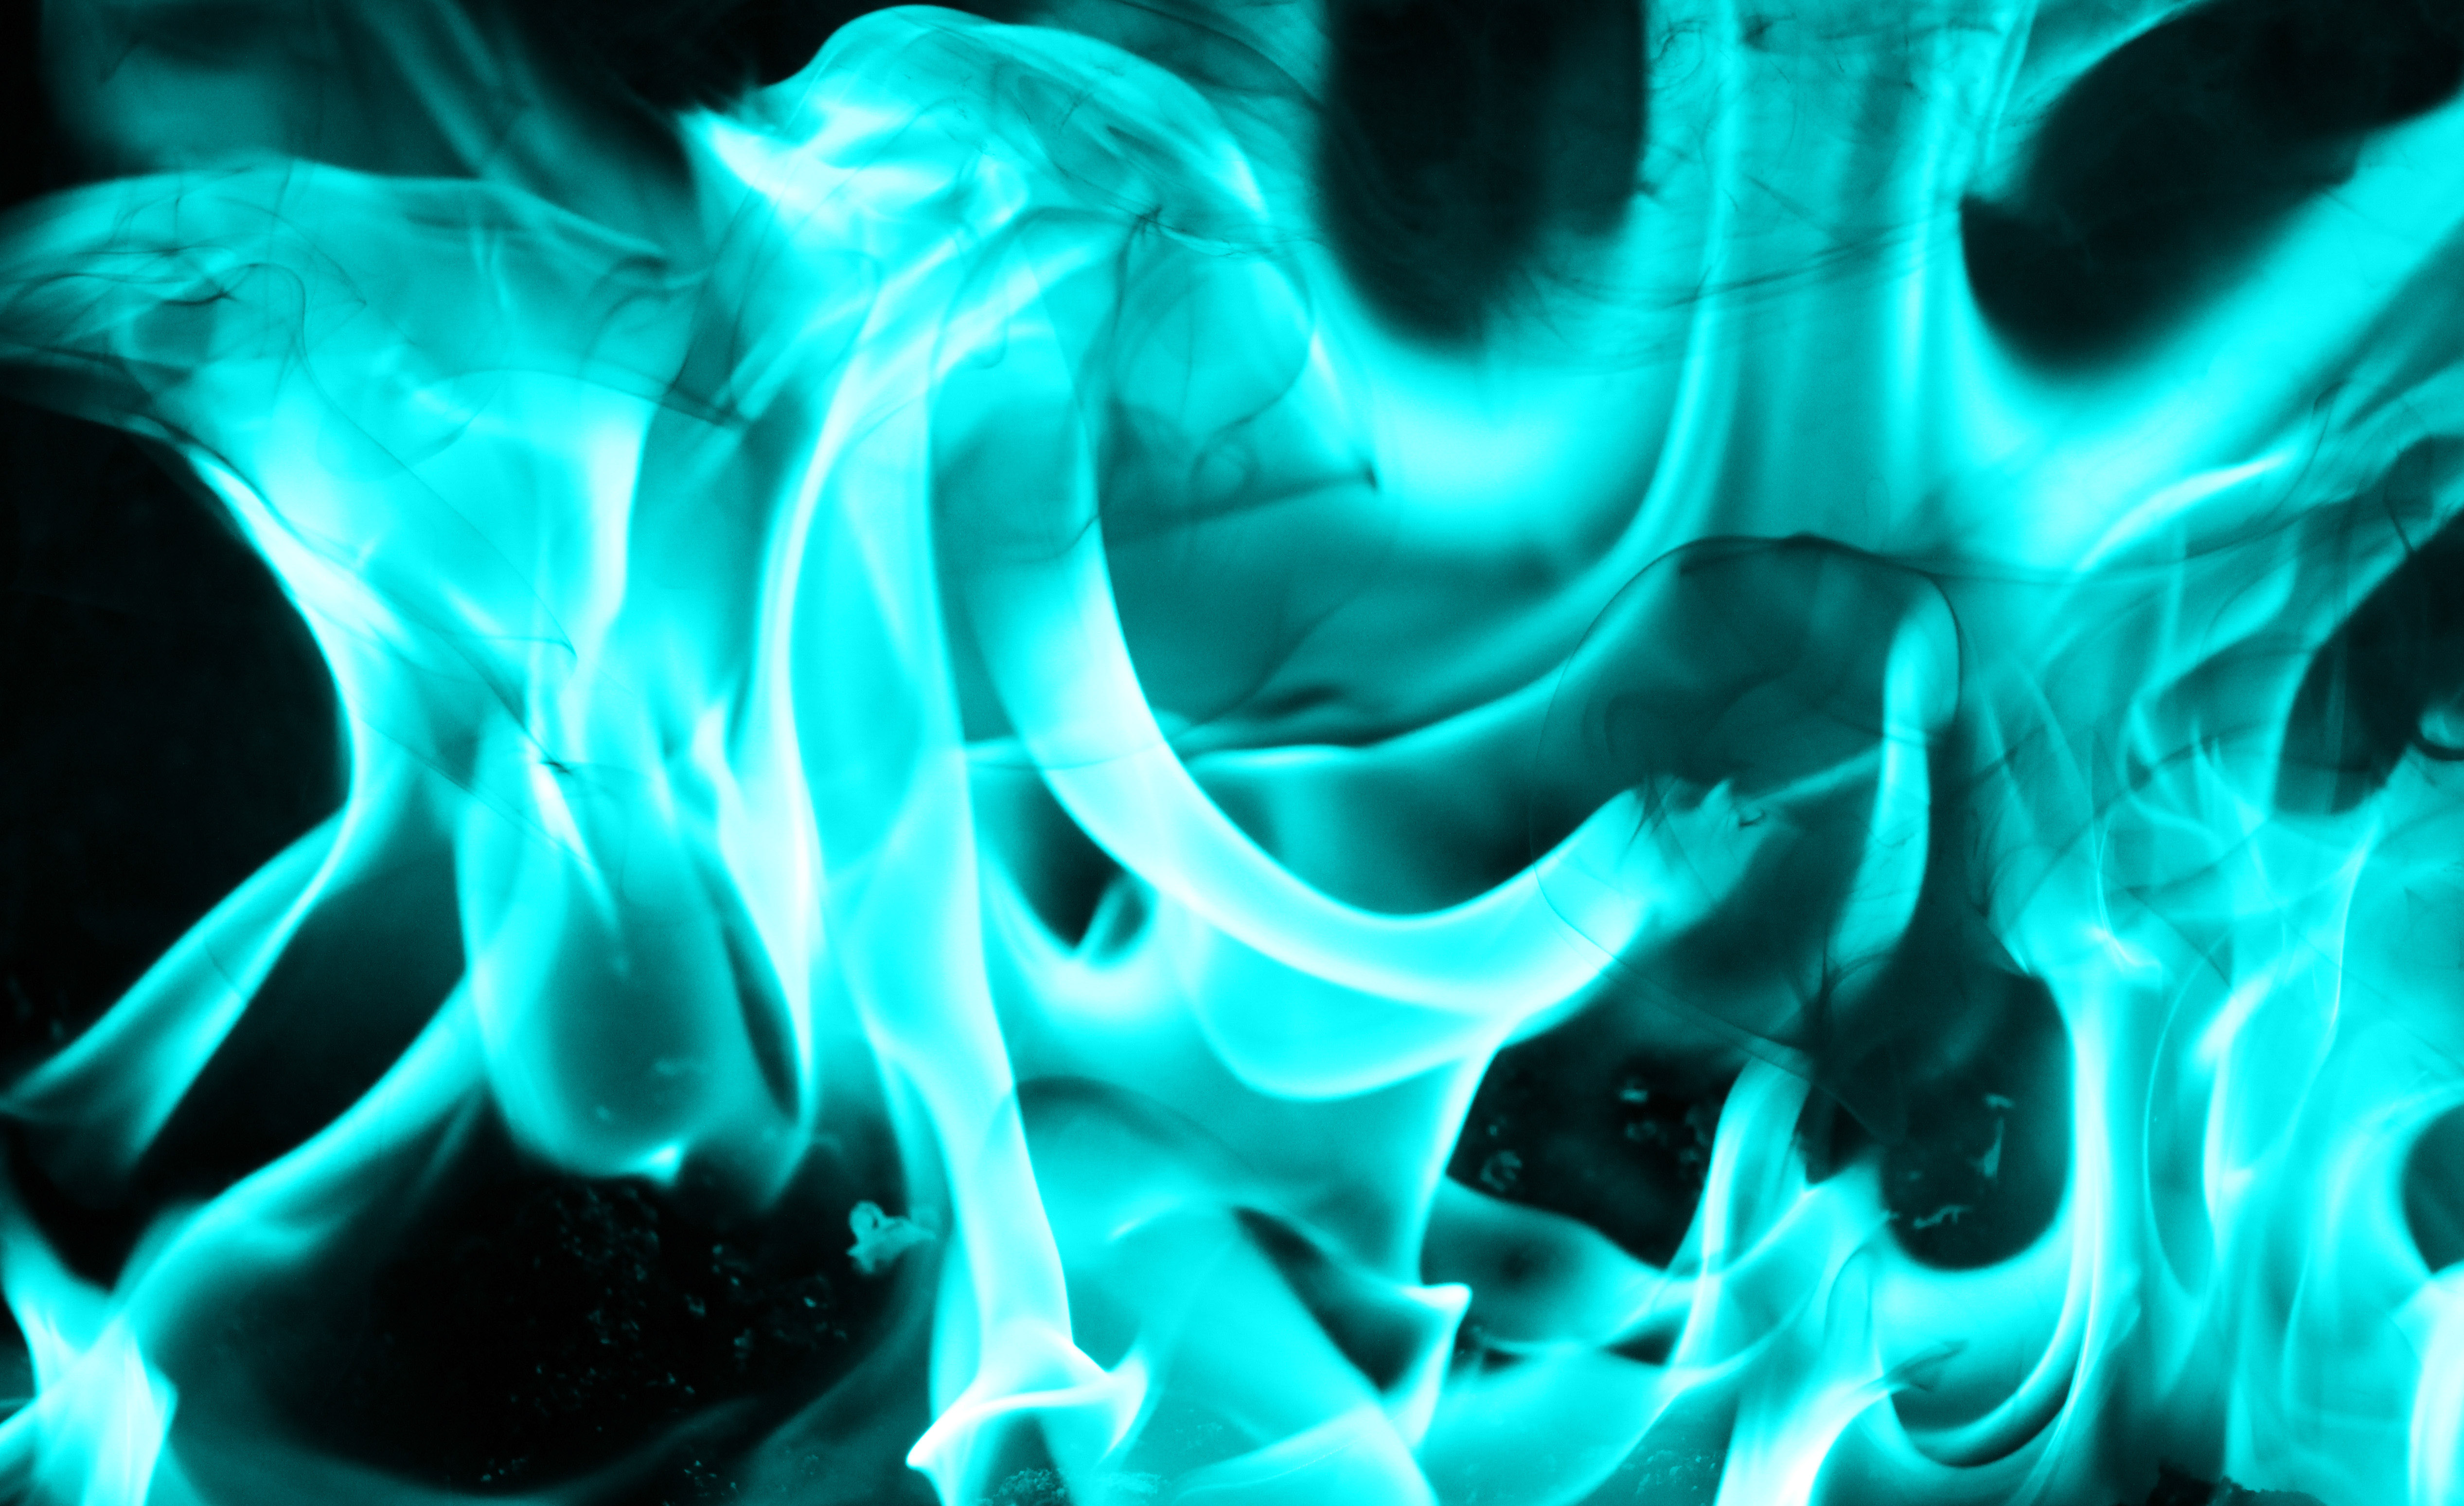 Teal Fire Texture Cool Flame Cold Burn Stock Photo Texture X